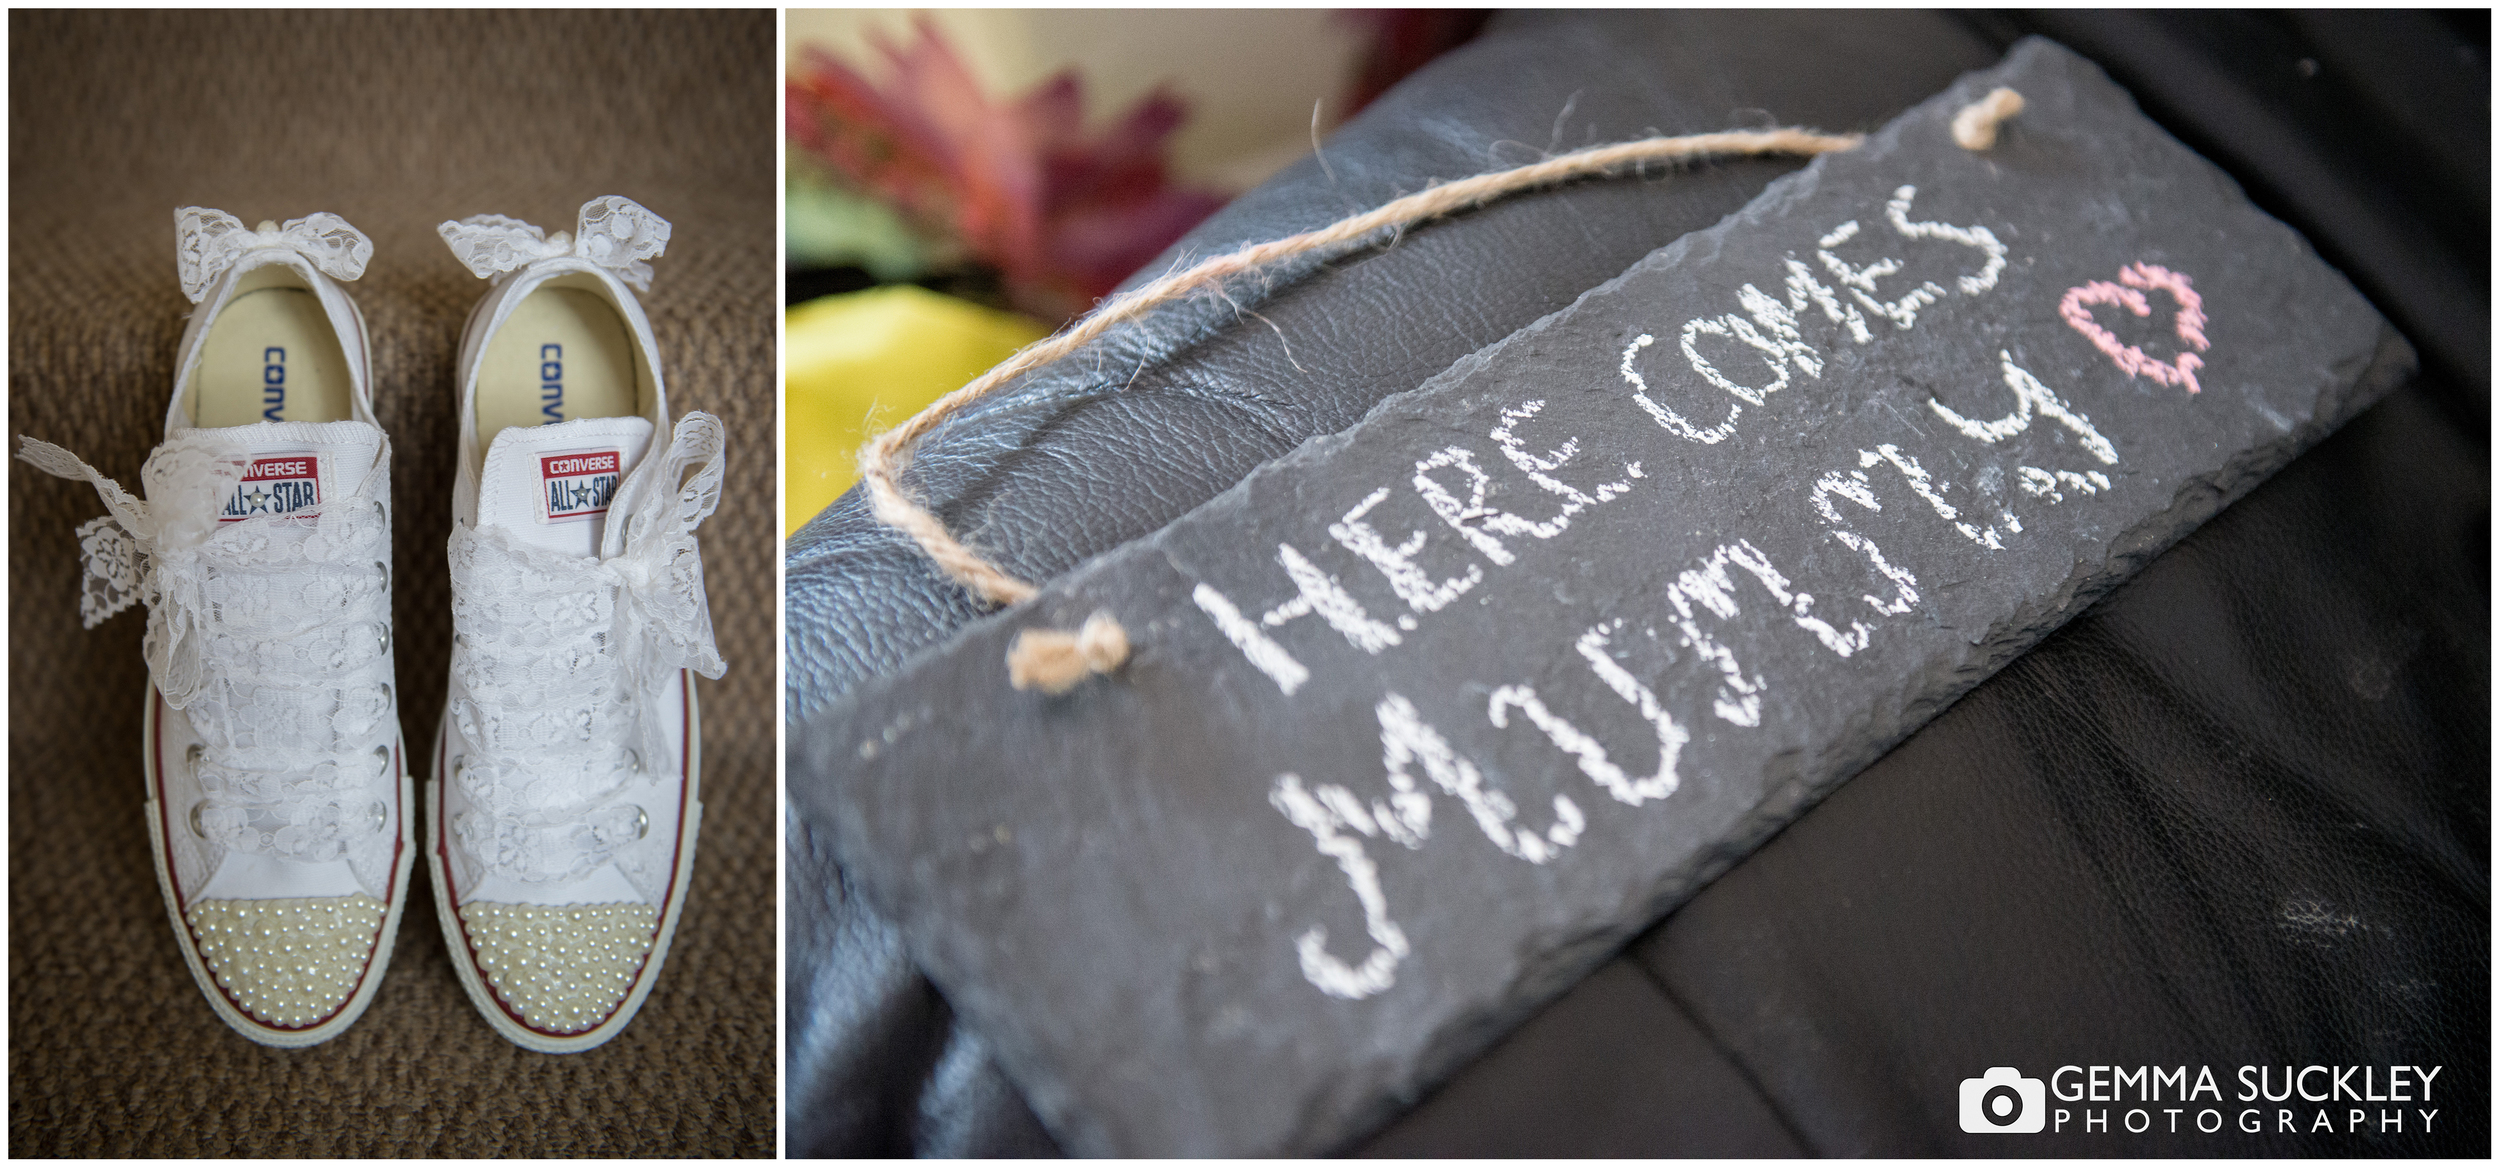 bespoke-converse-wedding--shoes.jpg